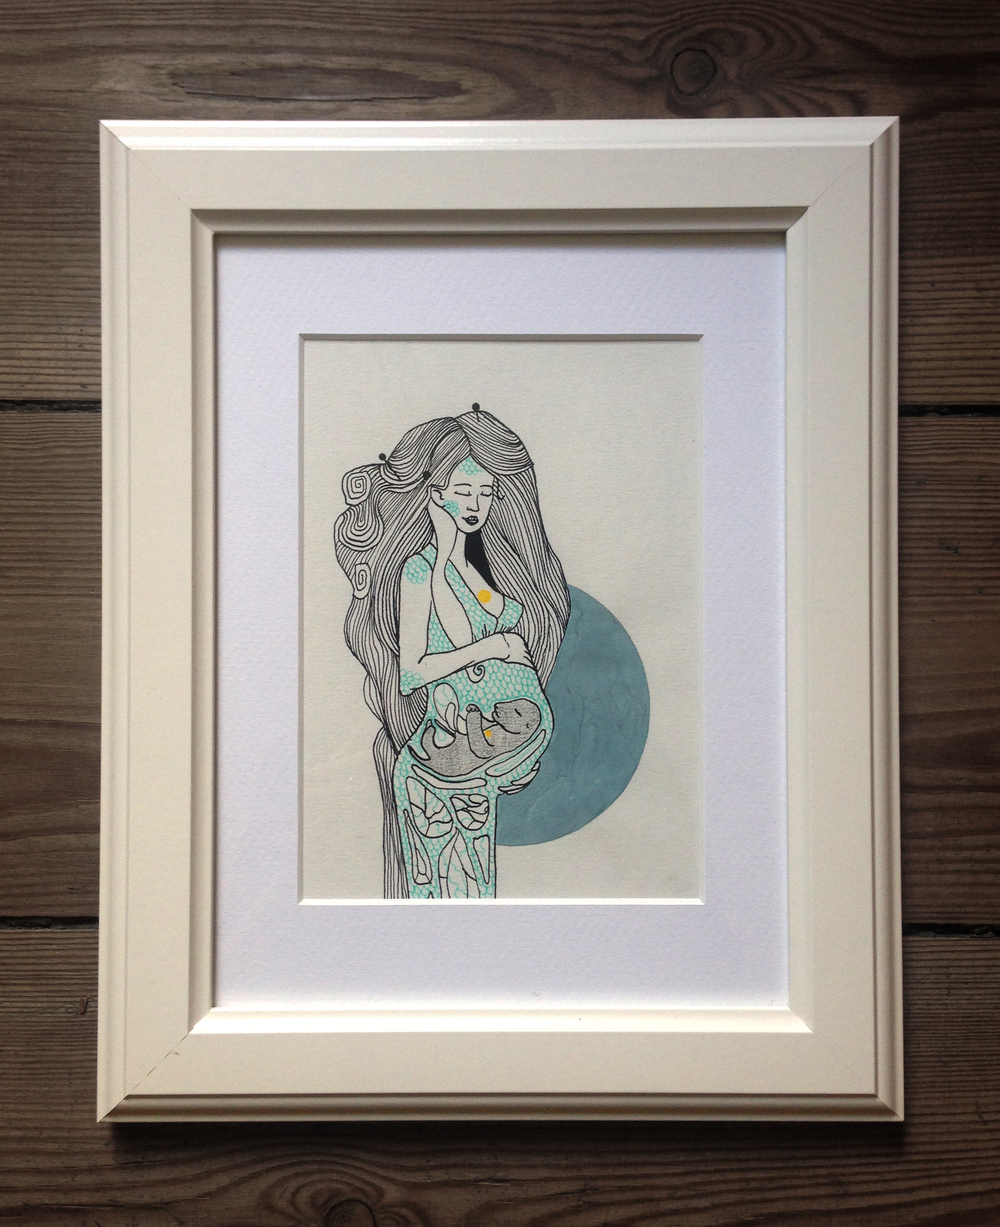 'Moon Mother' - illustration, ink, acrylic on paper, 2014